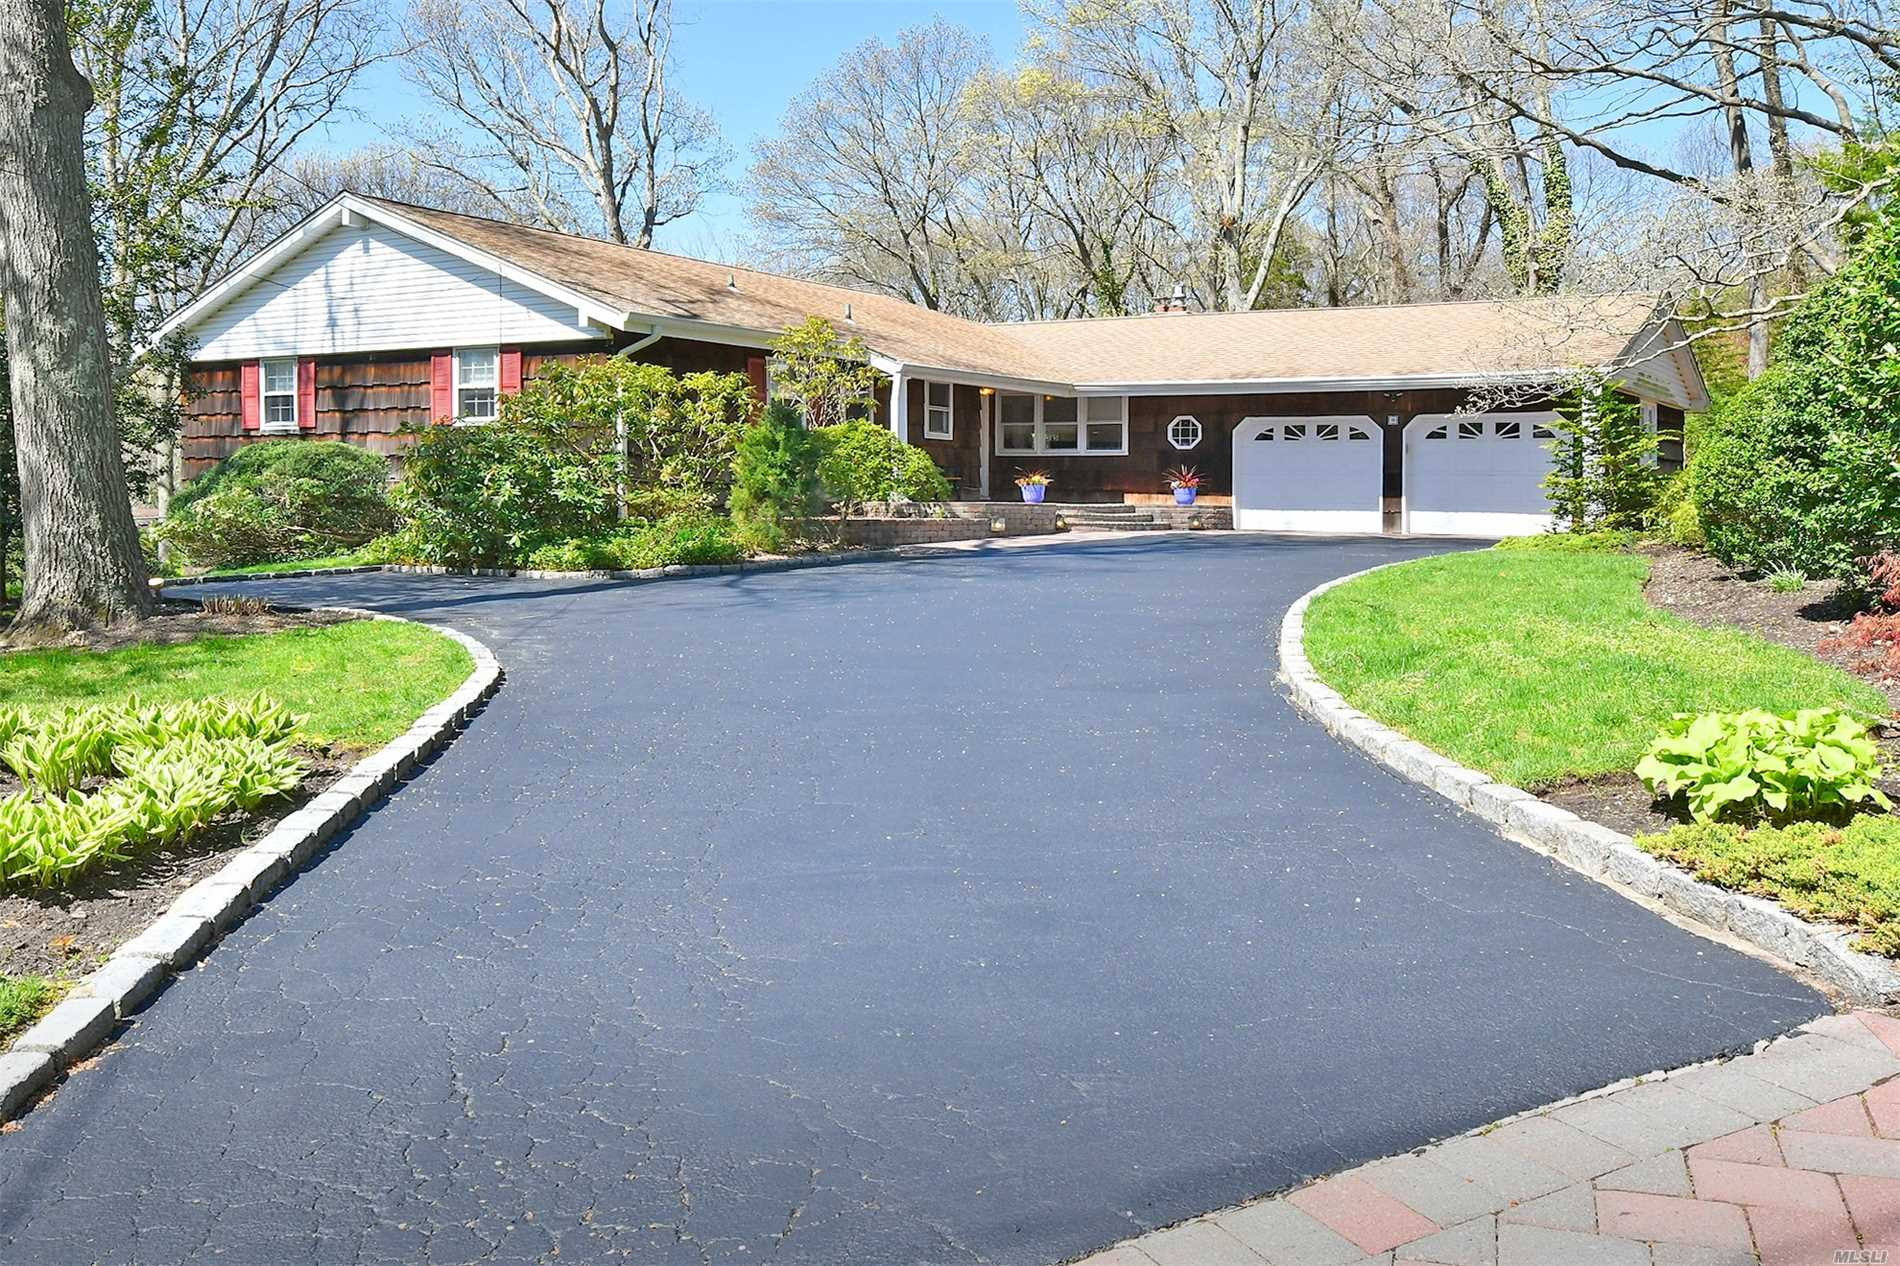 Lovely 3 Bdrm 3 full bath Pt of Woods ranch situated on stunning 1.12 acre property. Gorgeous heated, 20X40 IGP with multi level, composite decking. Cozy, sunlit family room w/gas, marble fireplace & rich wood floors. New paver stoop, updated roof, furnace, compressor & air handler. Walk out basement with double doors to country club yard. Half Hollow Hills SD.